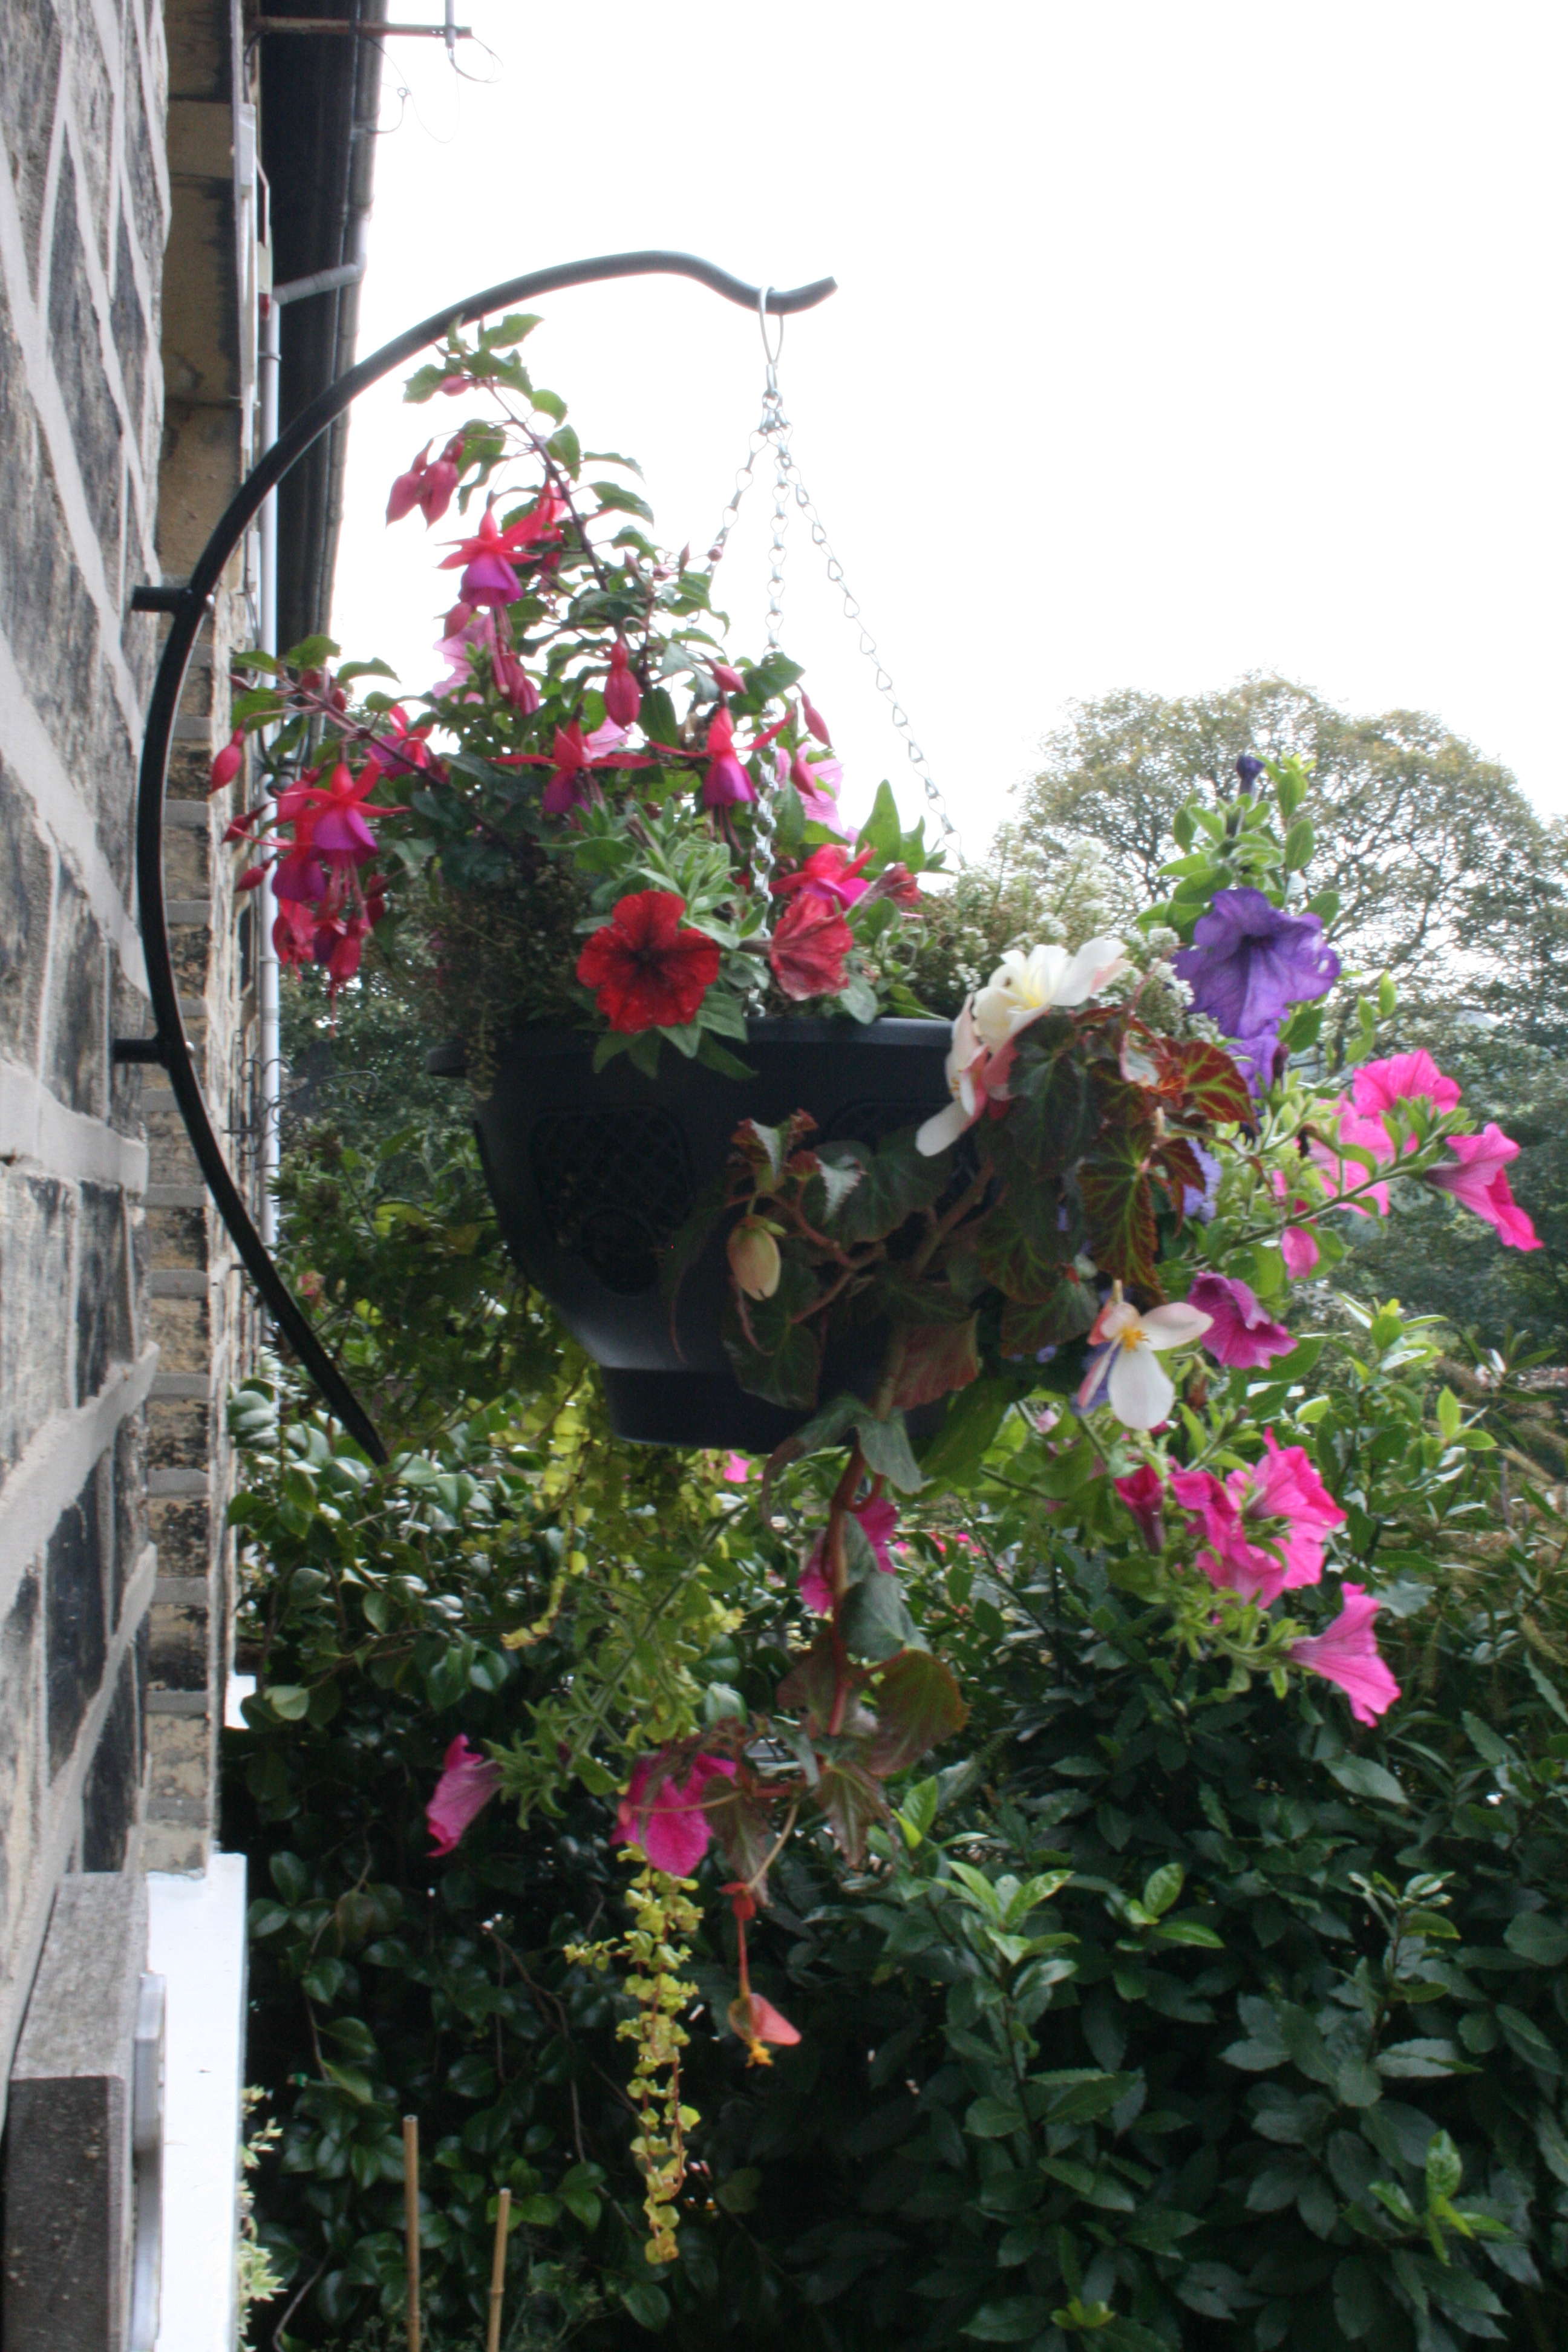 How to plant hanging baskets garden features ideas hanging basket brackets the holding arm garden features ideas mightylinksfo